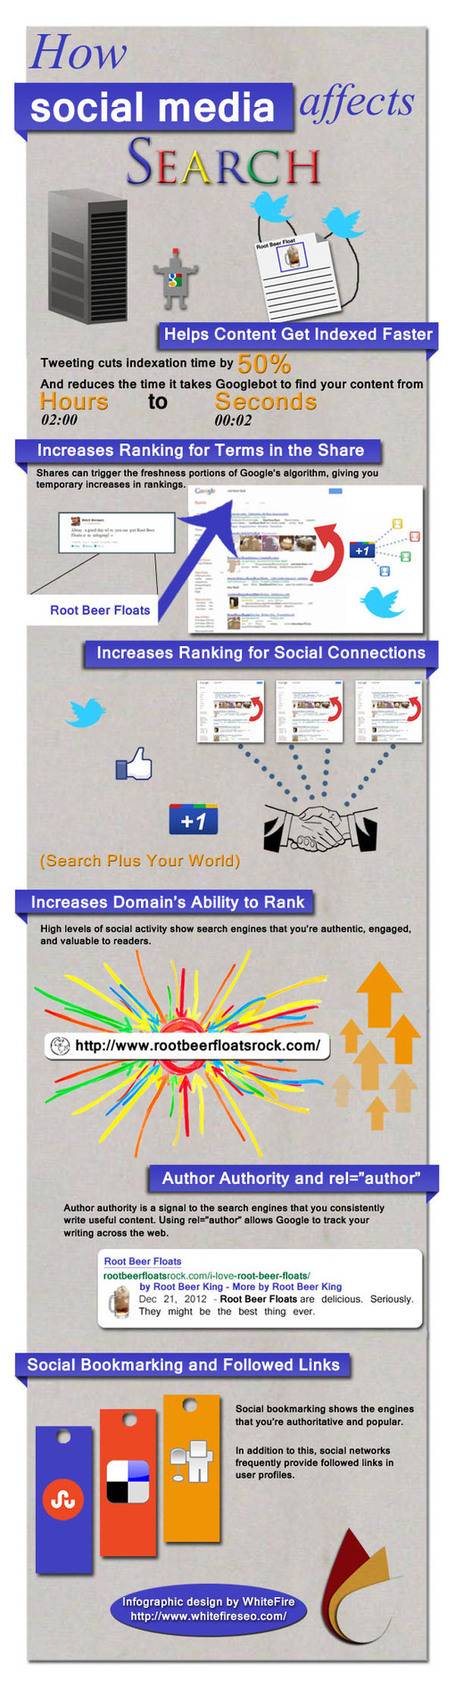 How Social Media Impacts SEO and Site Ranking: infographic | Social Media and Web Infographics hh | Scoop.it